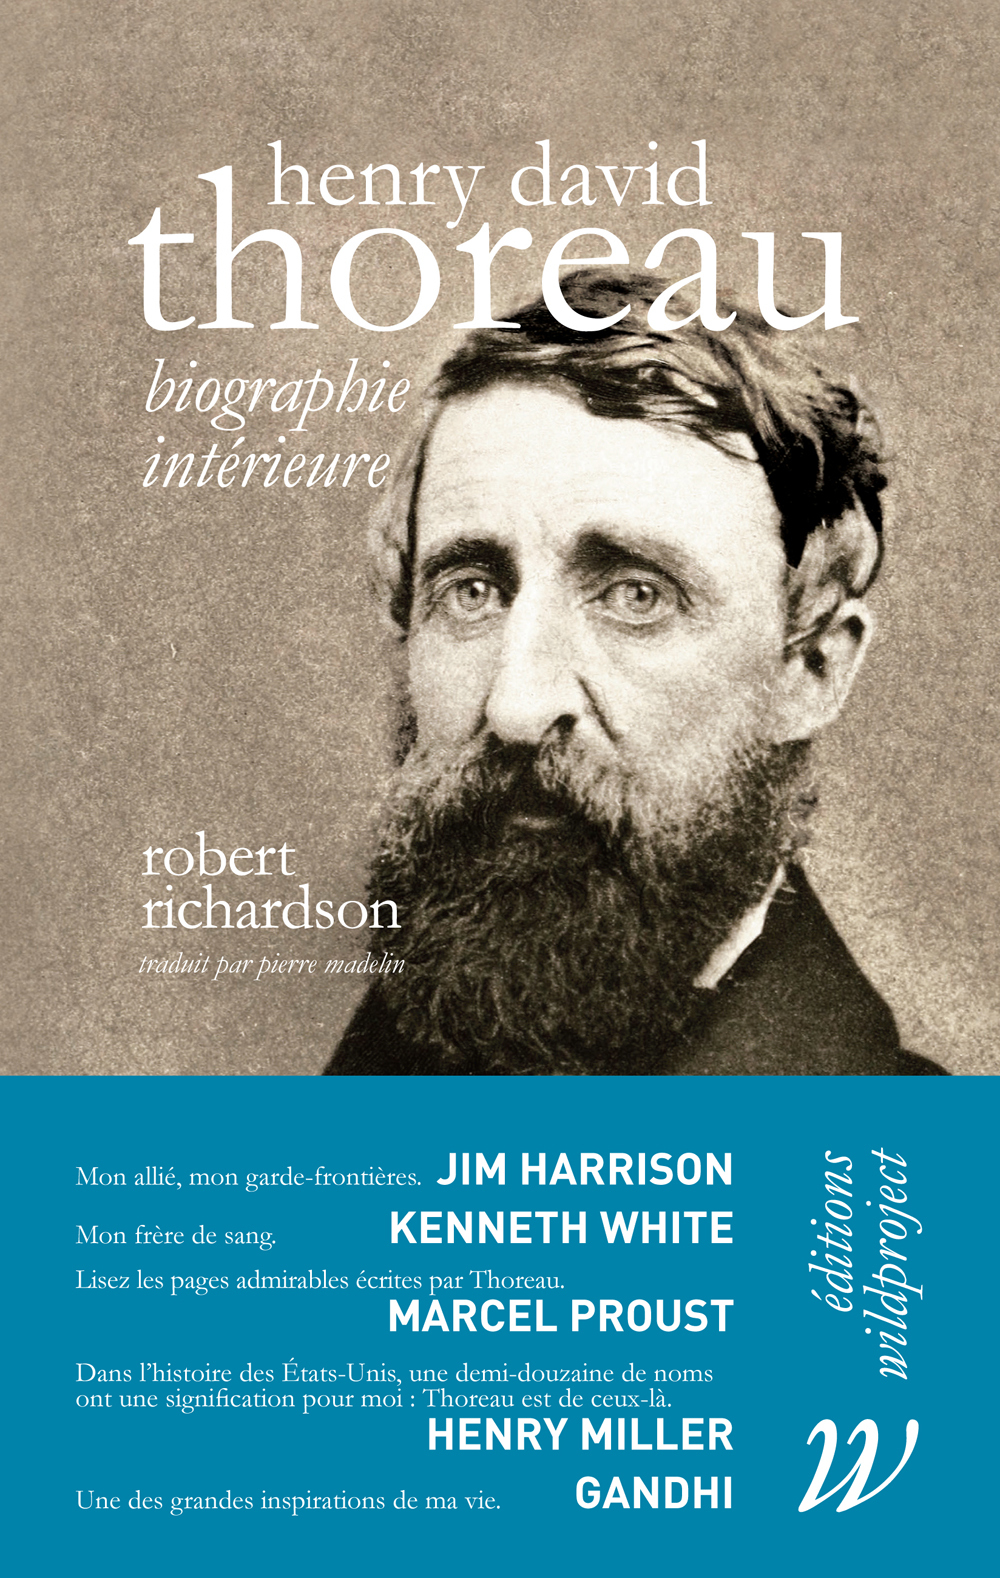 HENRY DAVID THOREAU - BIOGRAPHIE INTERIEURE